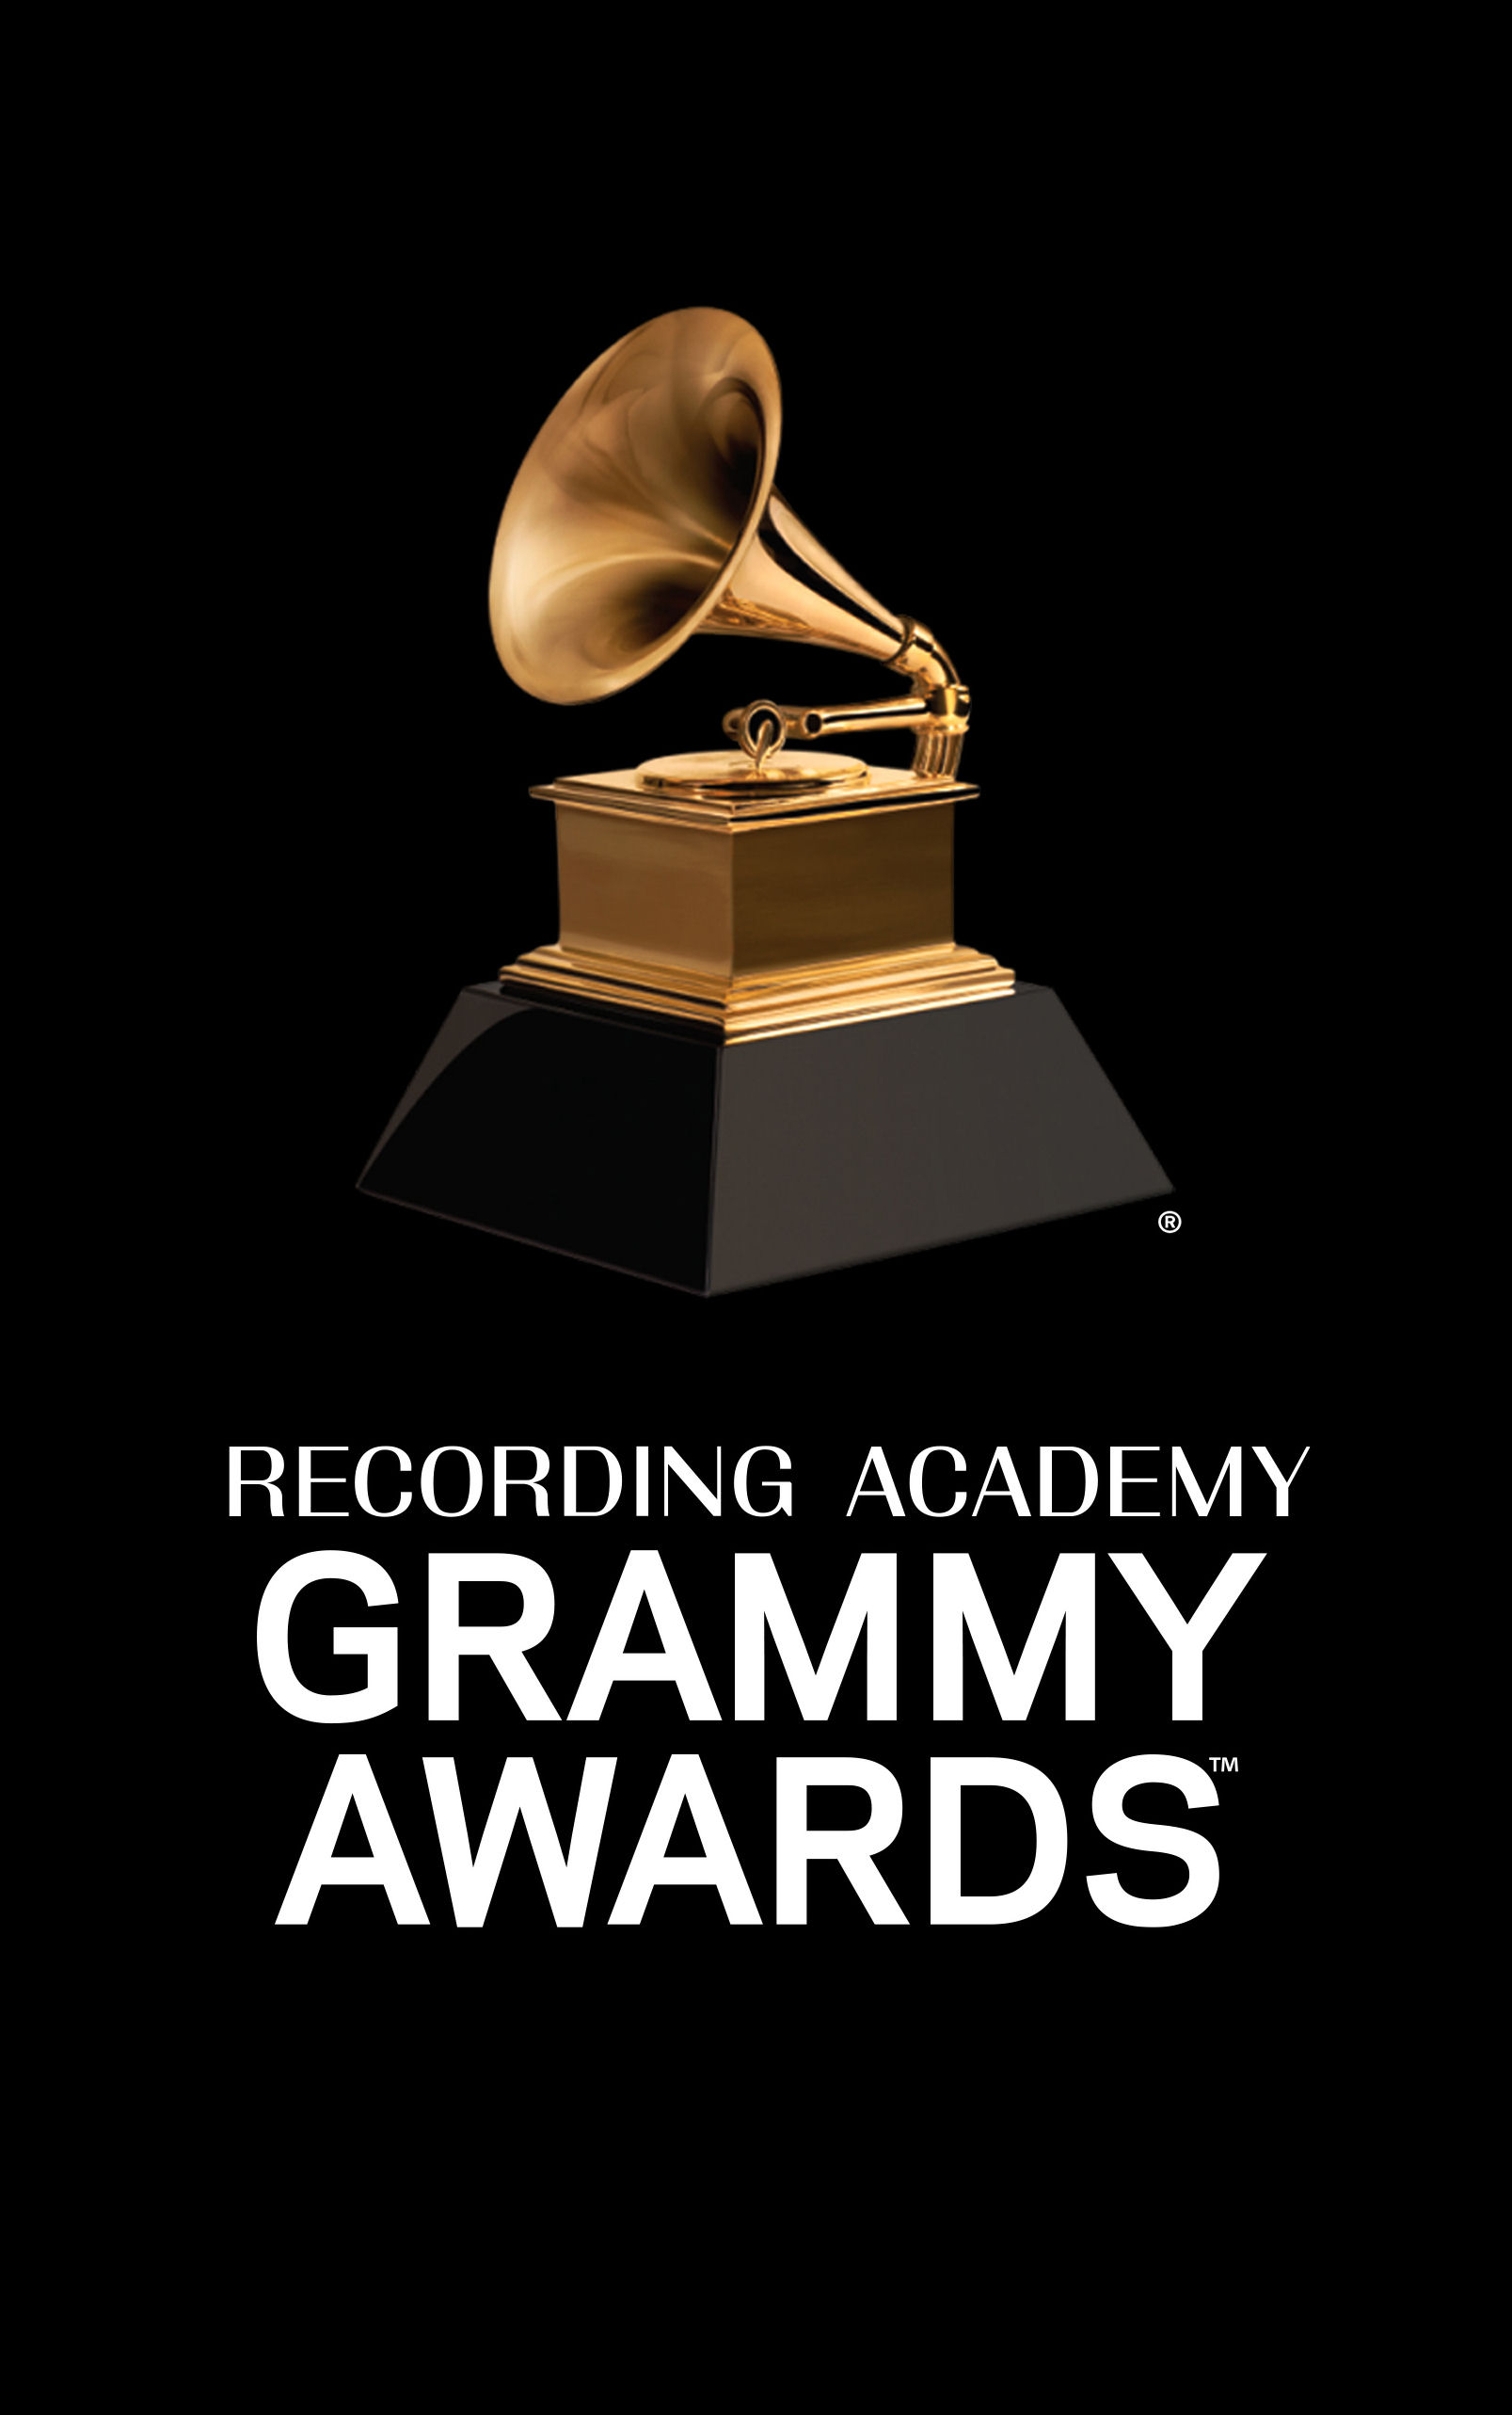 Grammy Awards poster2